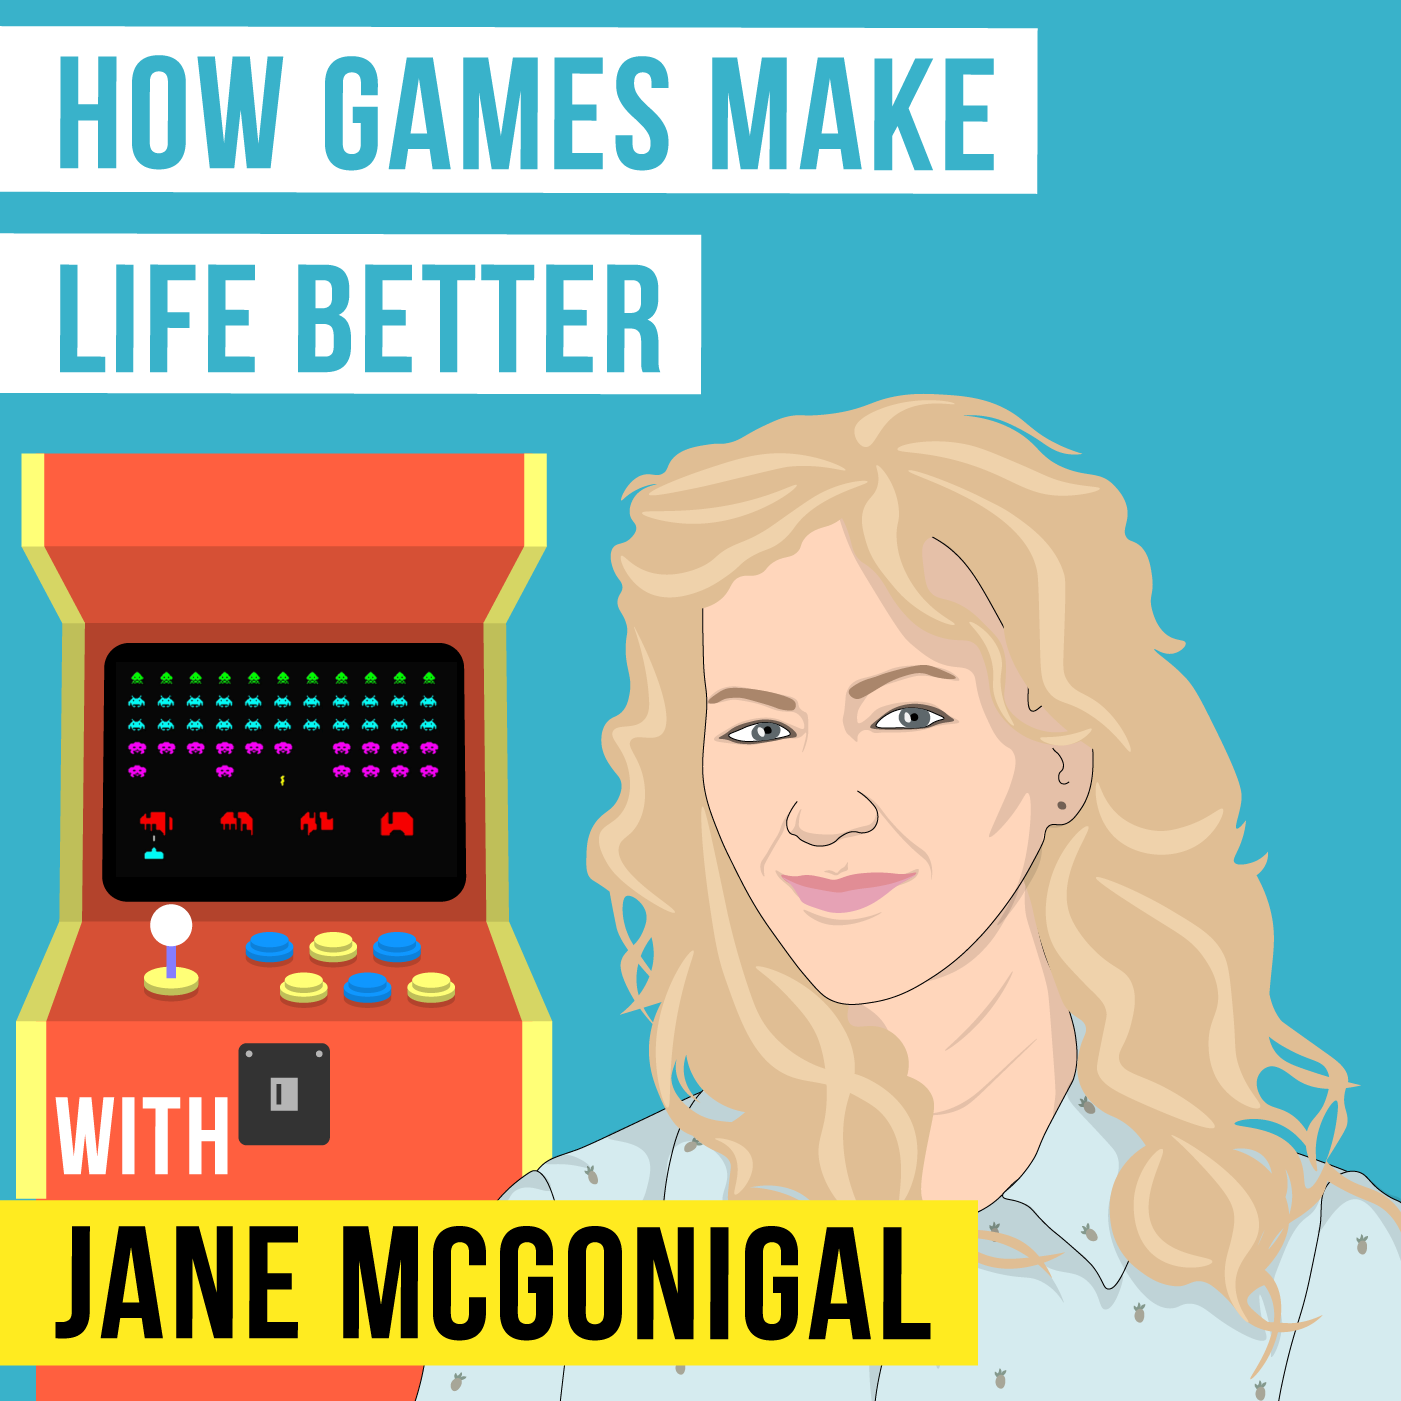 Jane-McGonigal invest like the best